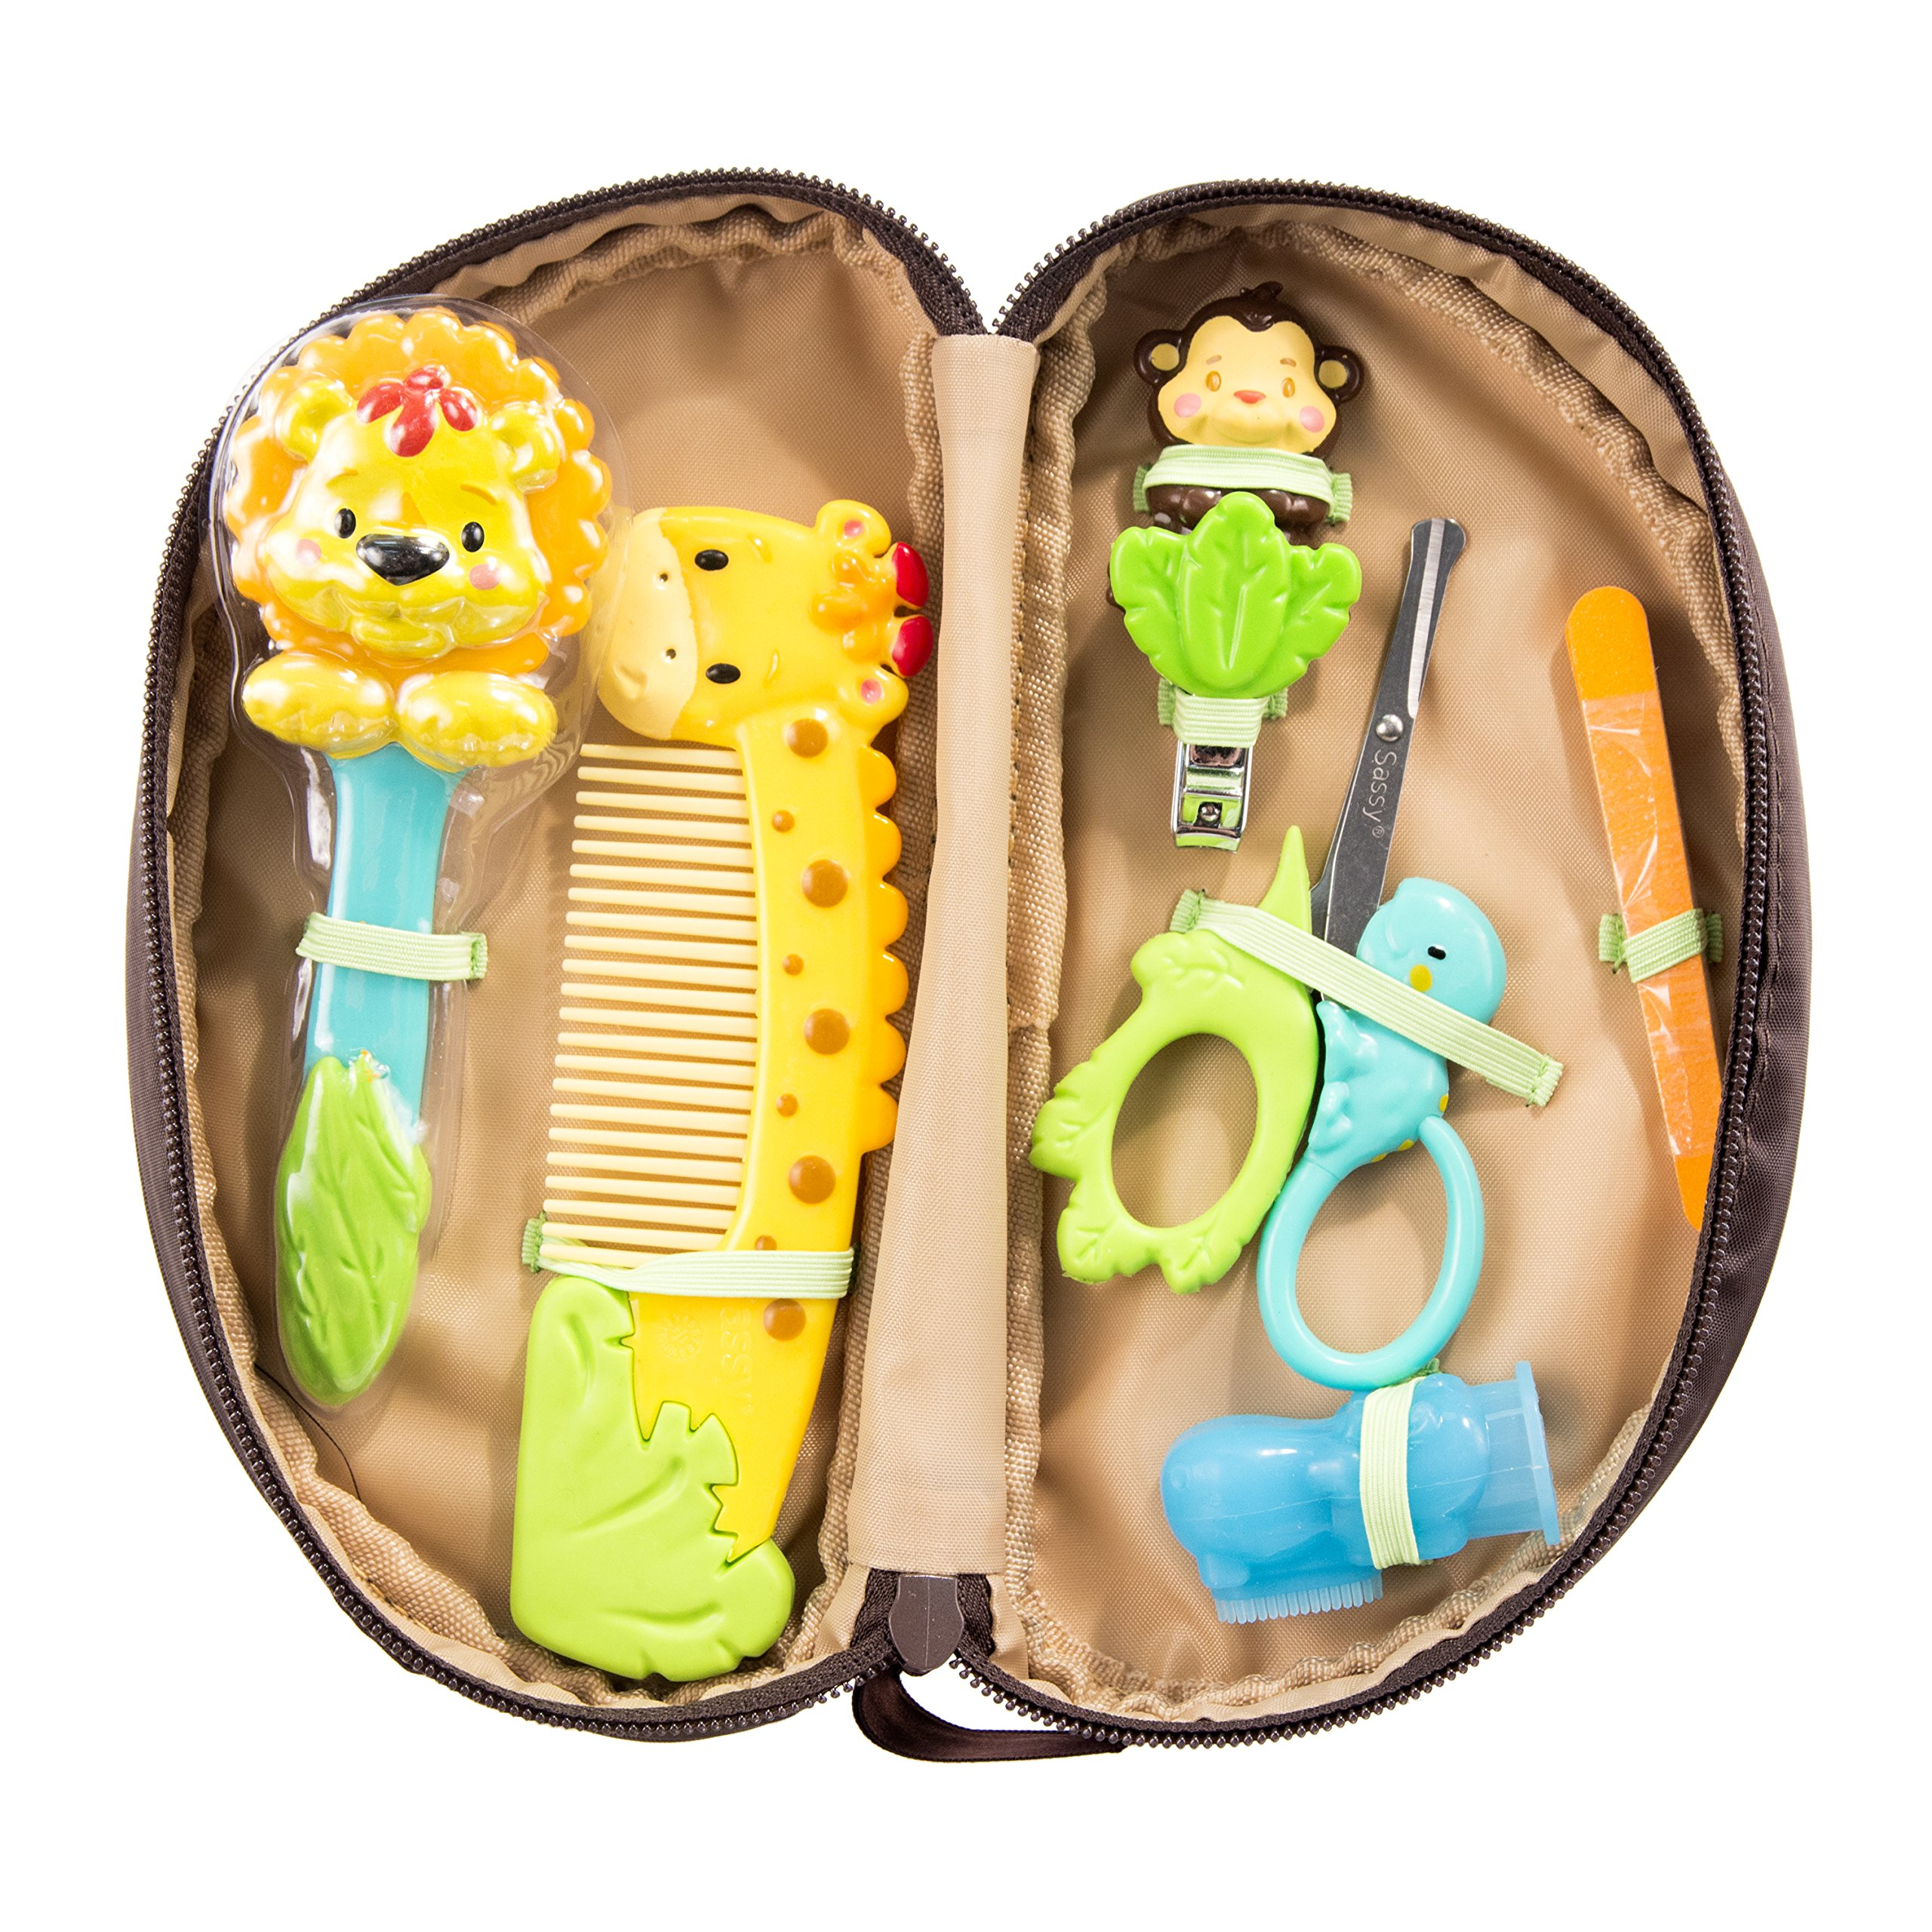 Sassy Jungle Theme Grooming Set, 11 Count by Sassy